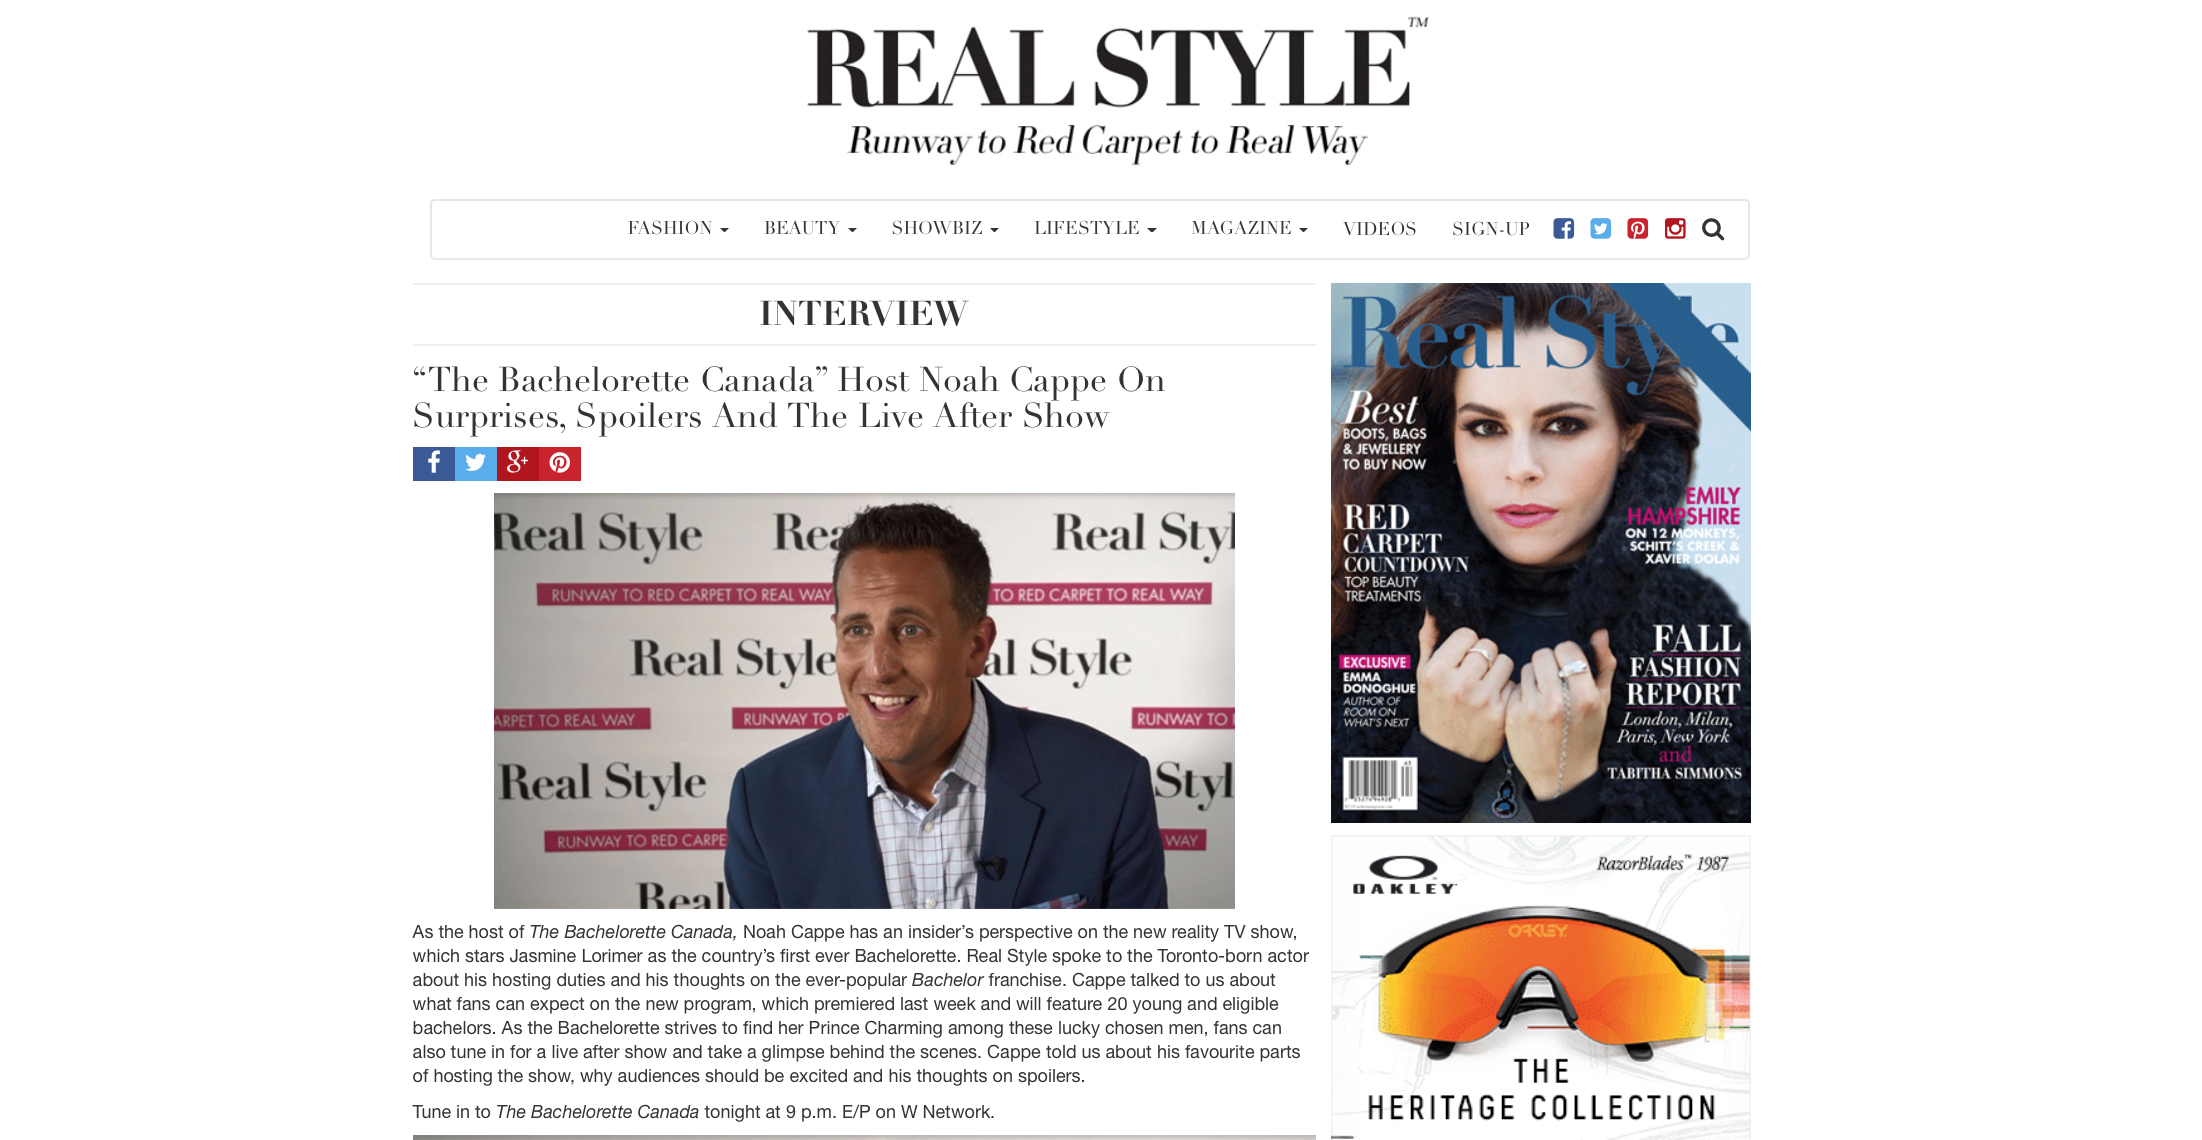 09-21-16_Real Style_ The Bachelorette Canada Host Noah Cappe on Surprises, Spoilers And the Live After Show.png